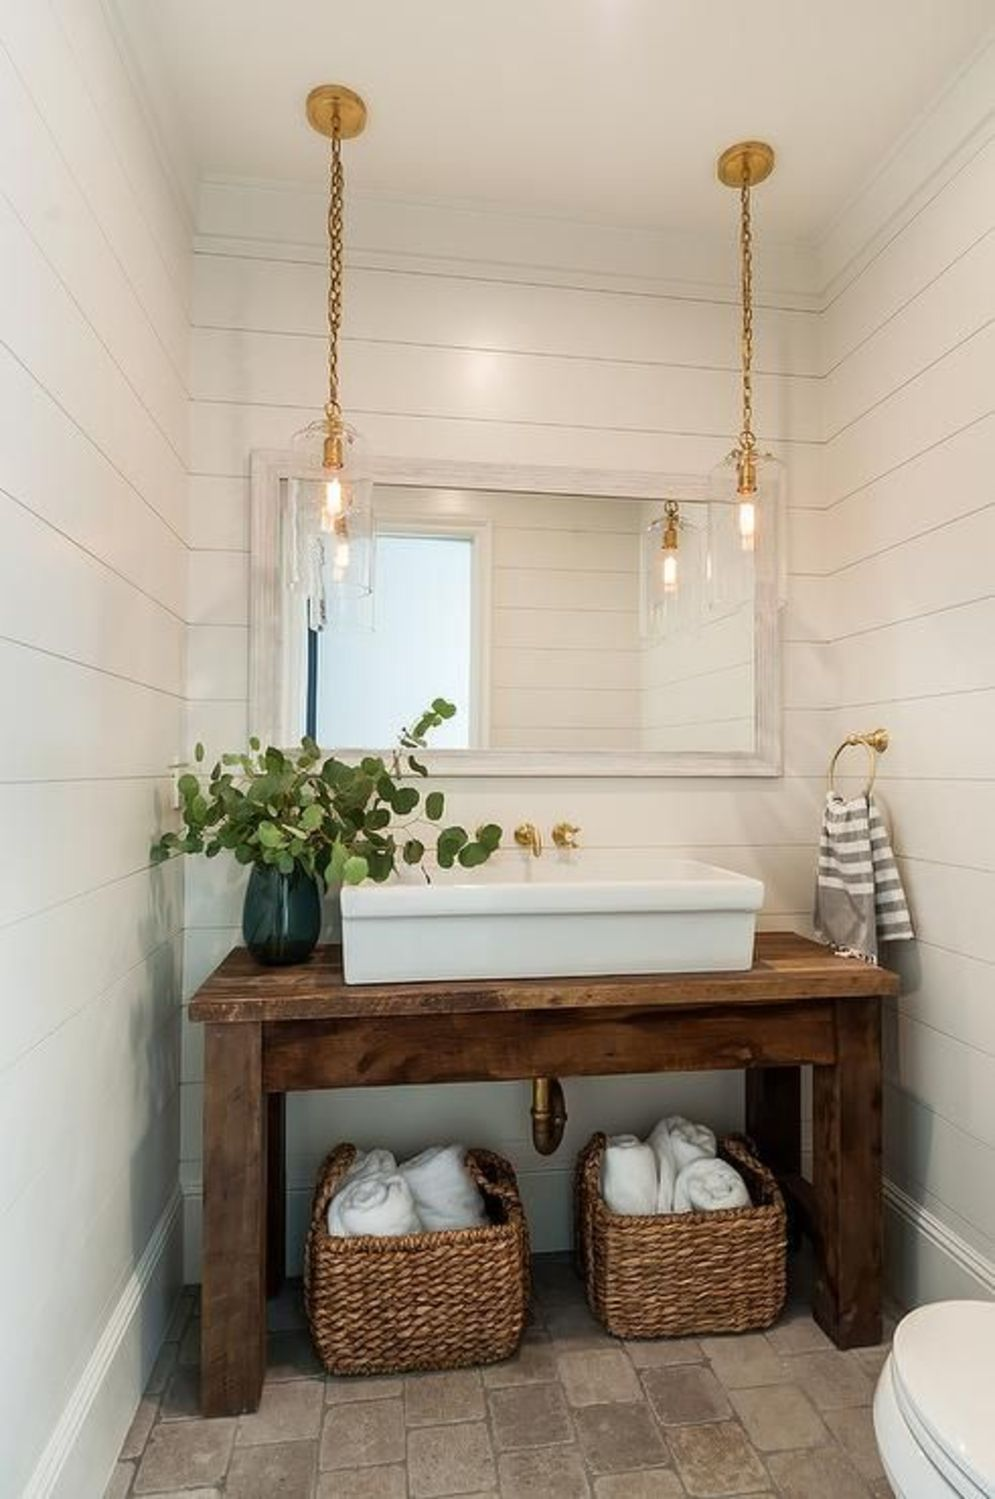 Most savvy bathroom designs with elegant wood finish to give more natural feel Image 3